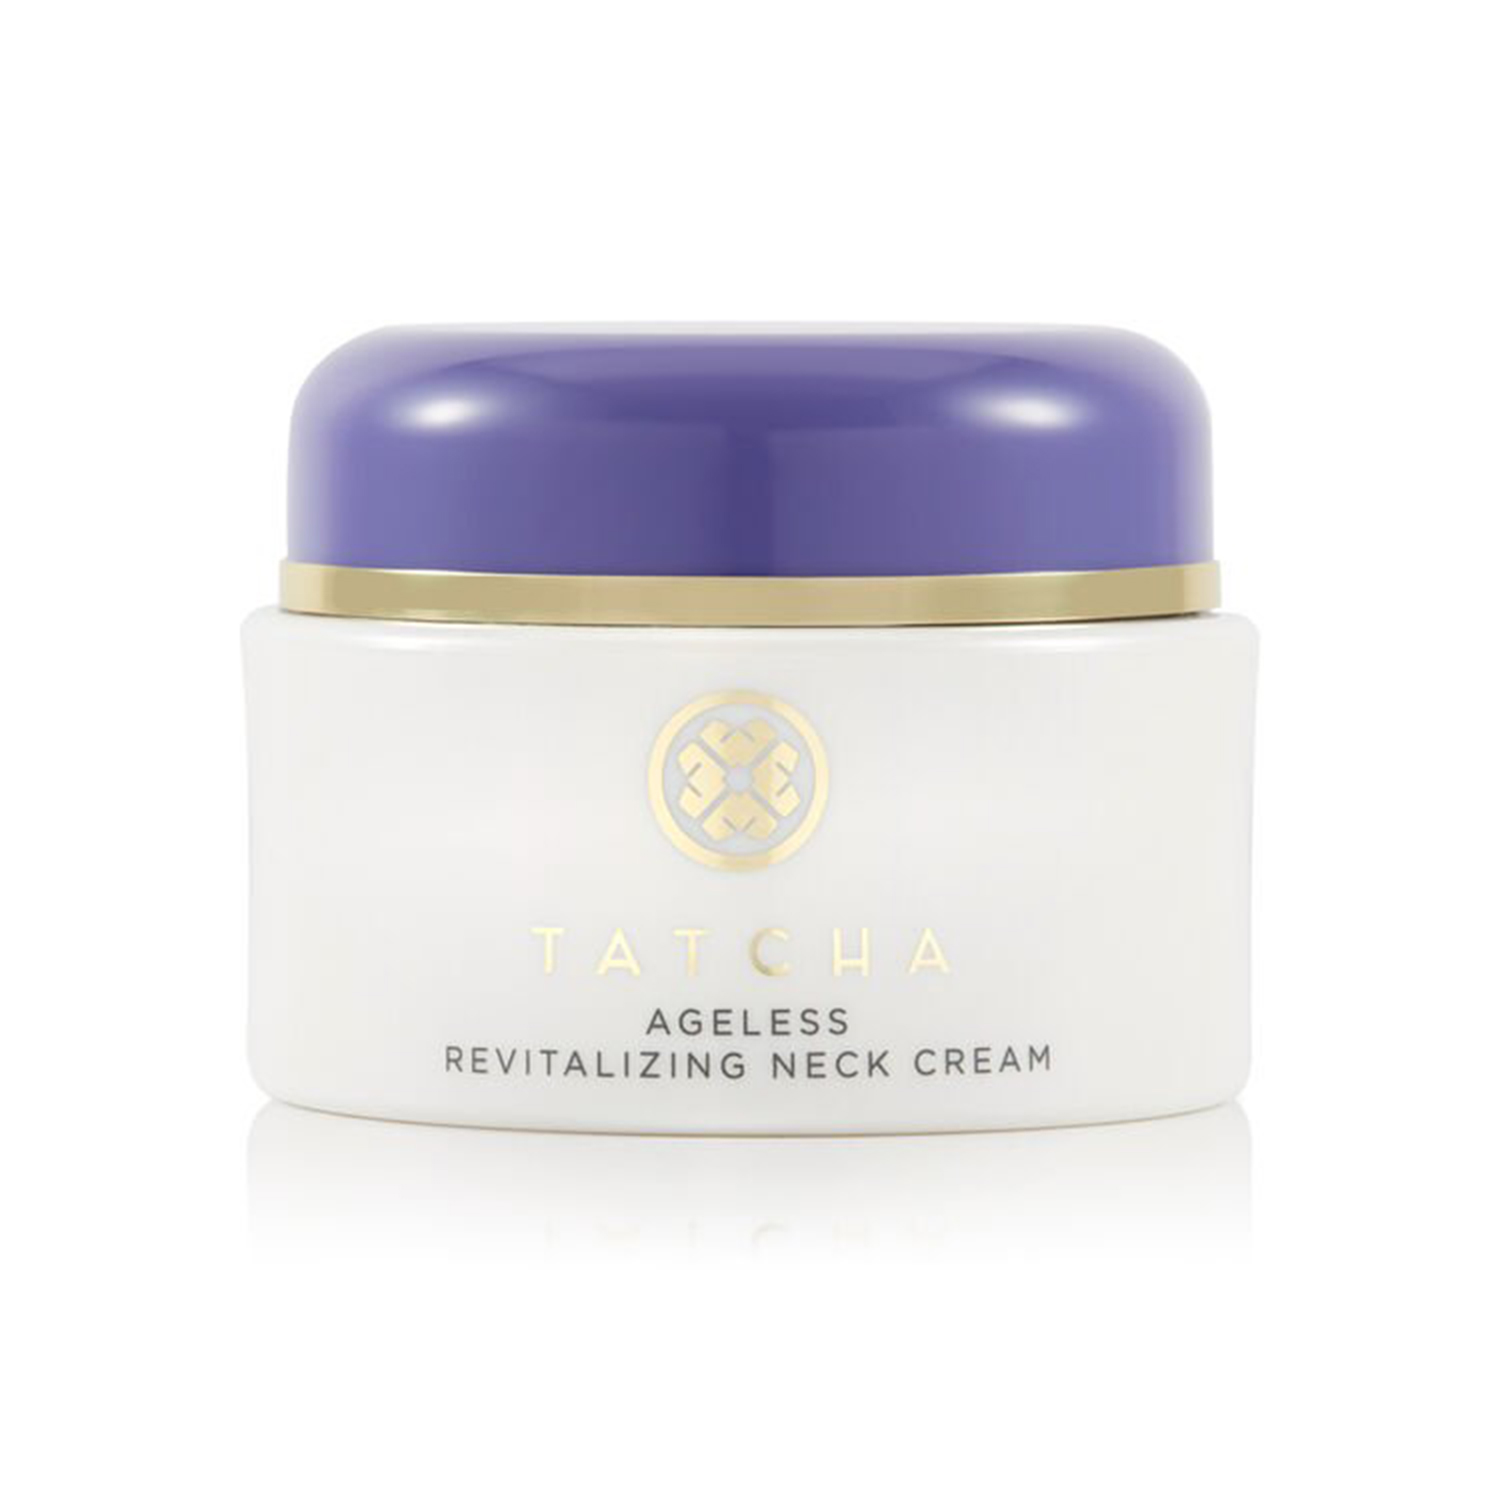 Ageless Revitalizing Neck Cream Tatcha